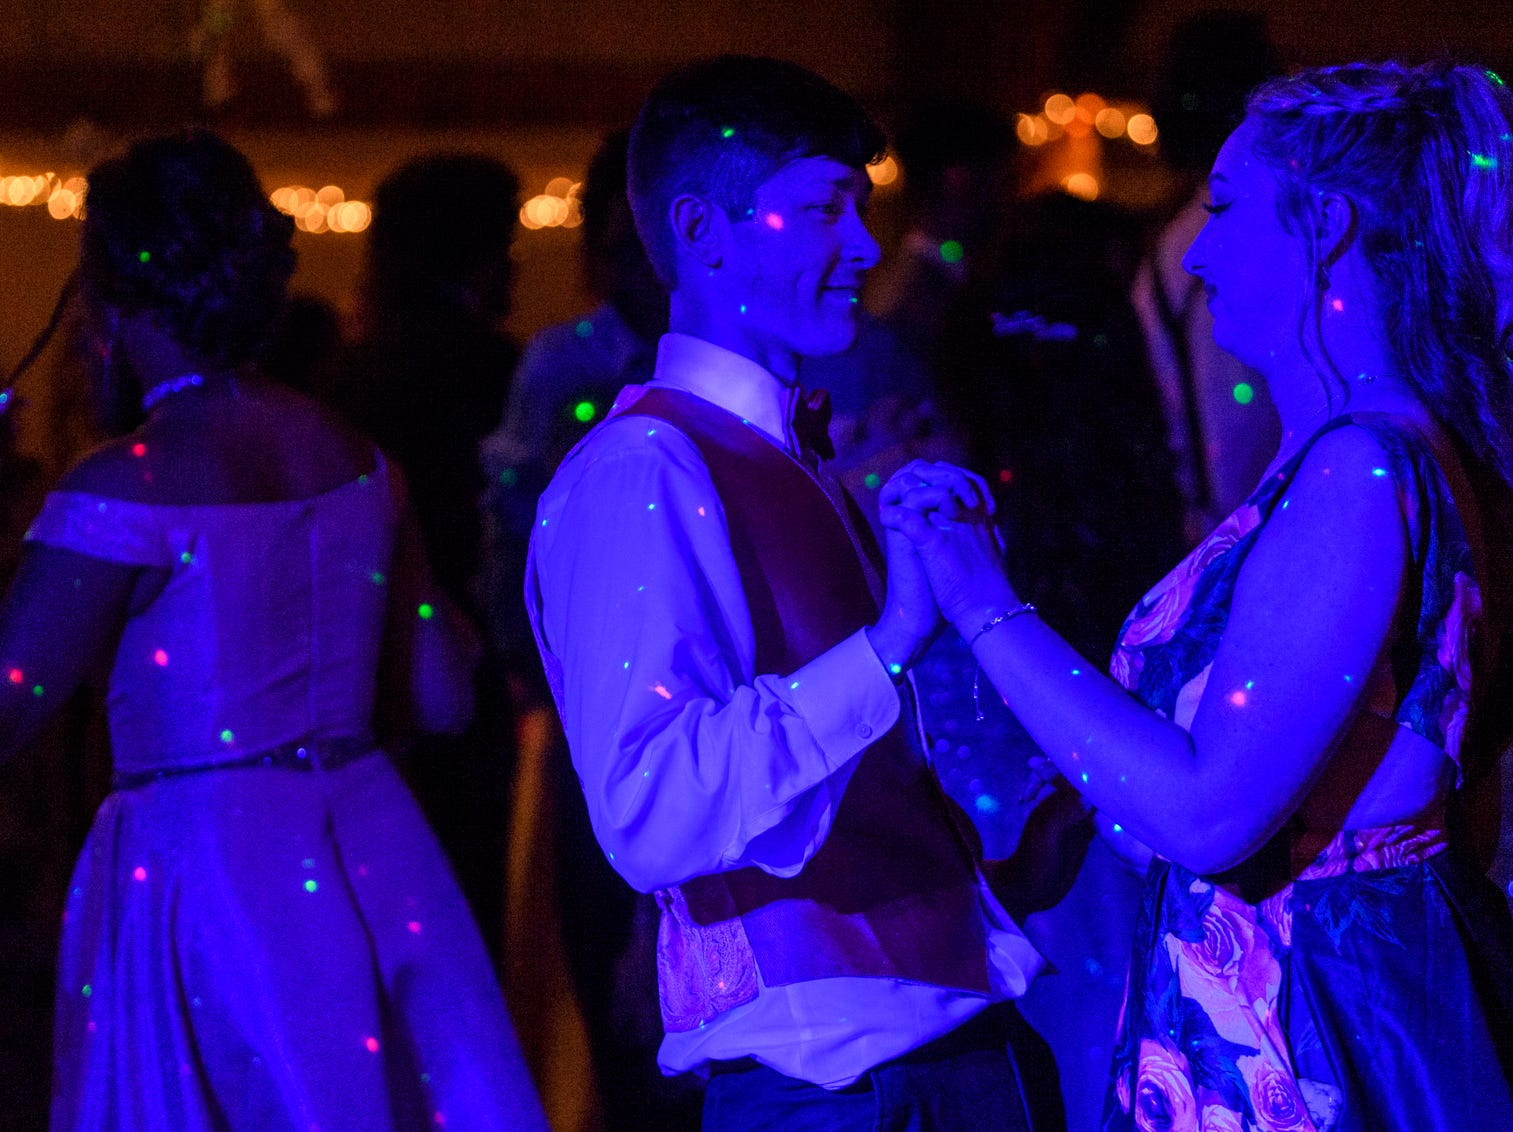 """Jimmy Garris, left, dances with his date Destiny Woods, right, during Central High School's """"Uptown Night"""" themed prom held at the Vanderburgh 4-H Center auditorium in Evansville, Ind., Saturday, April 27, 2019."""